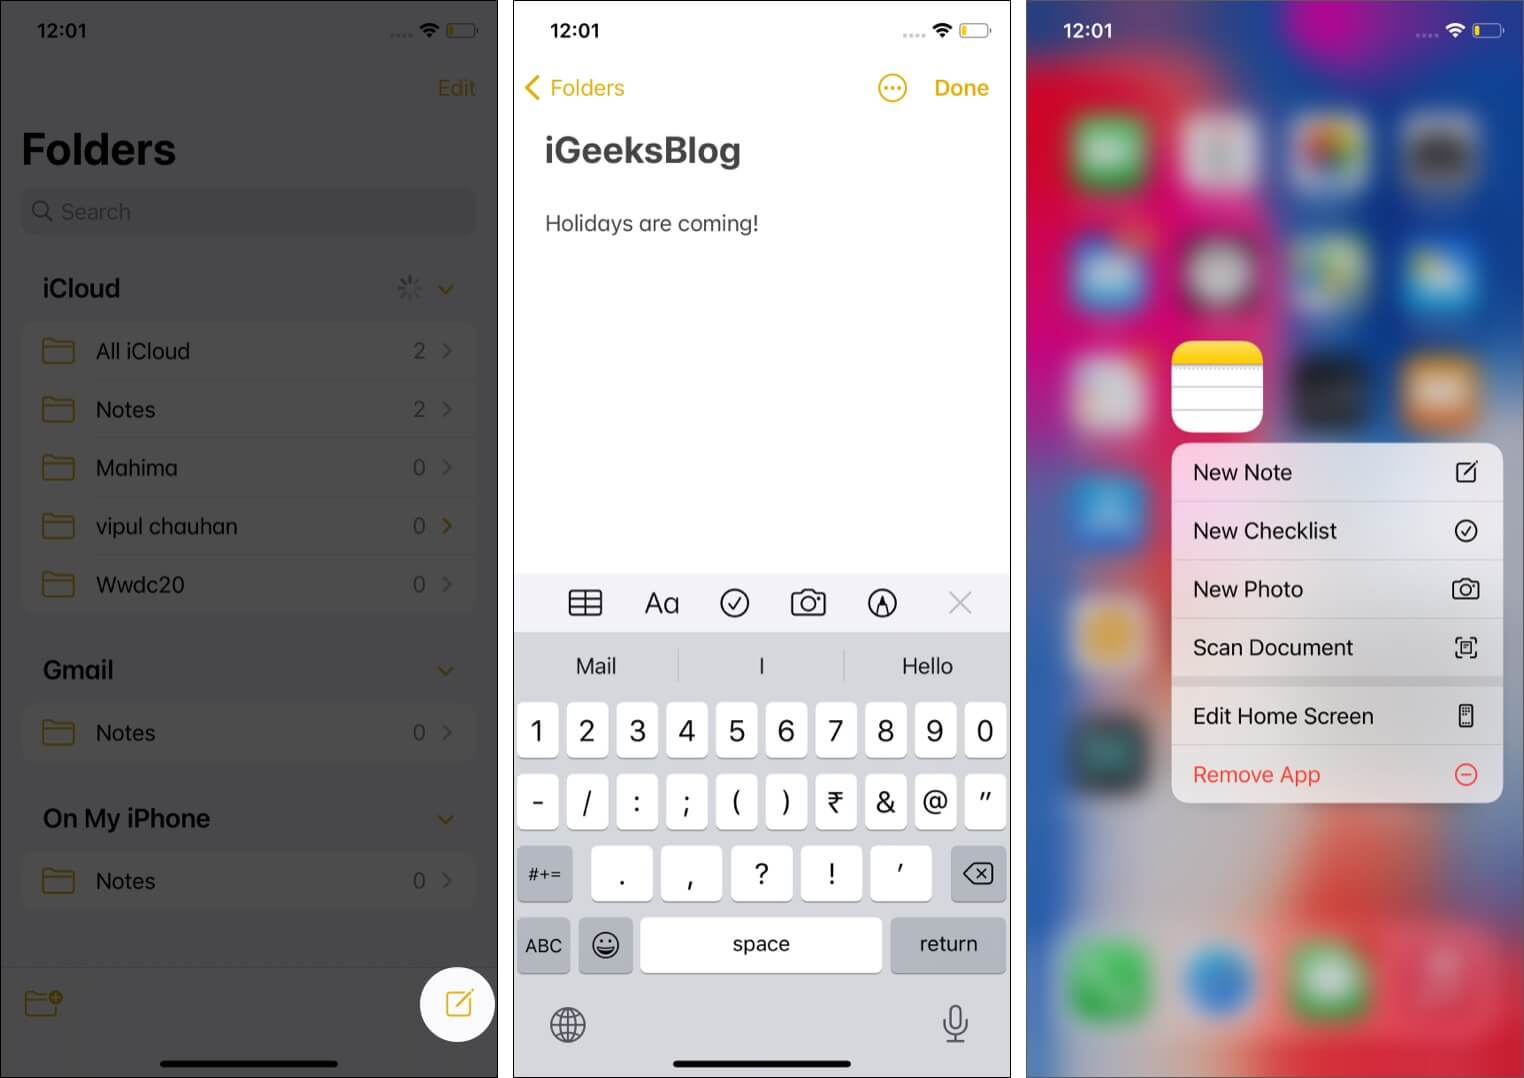 Create a new note in apple notes app